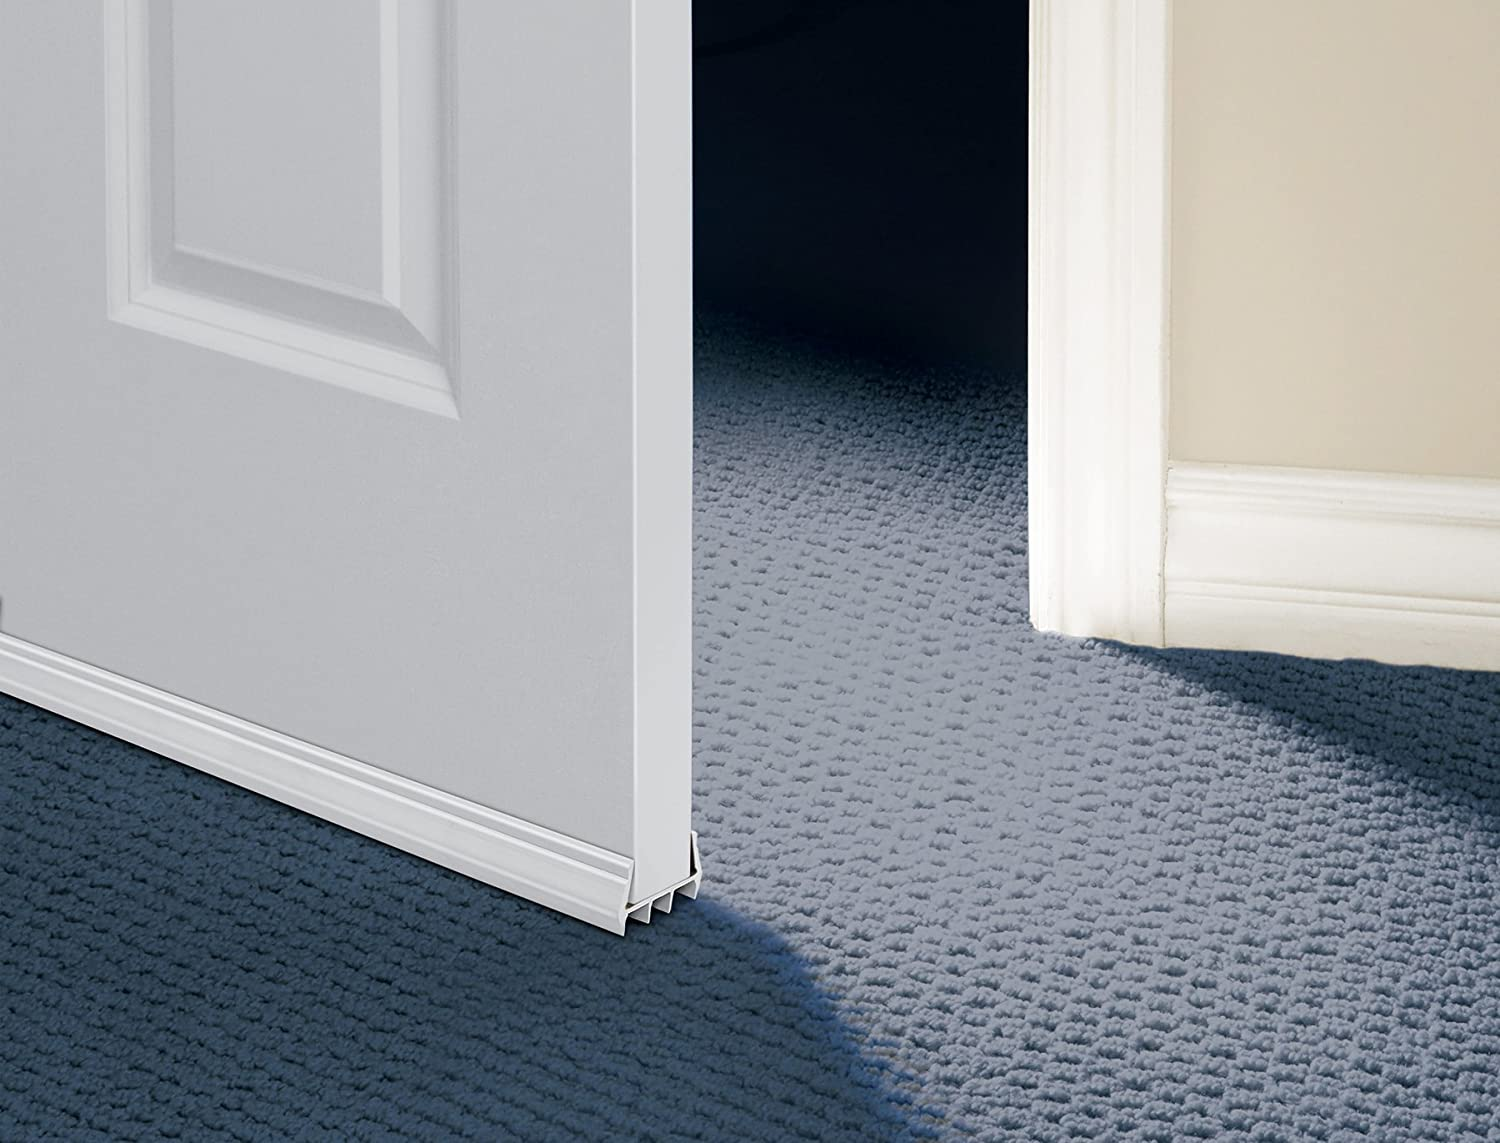 Door Draft Stopper Draft Stopper Door Draft Blocker Door Snake Draft Excluder UNFILLED DRAFT STOPPER Grey with White Swirls